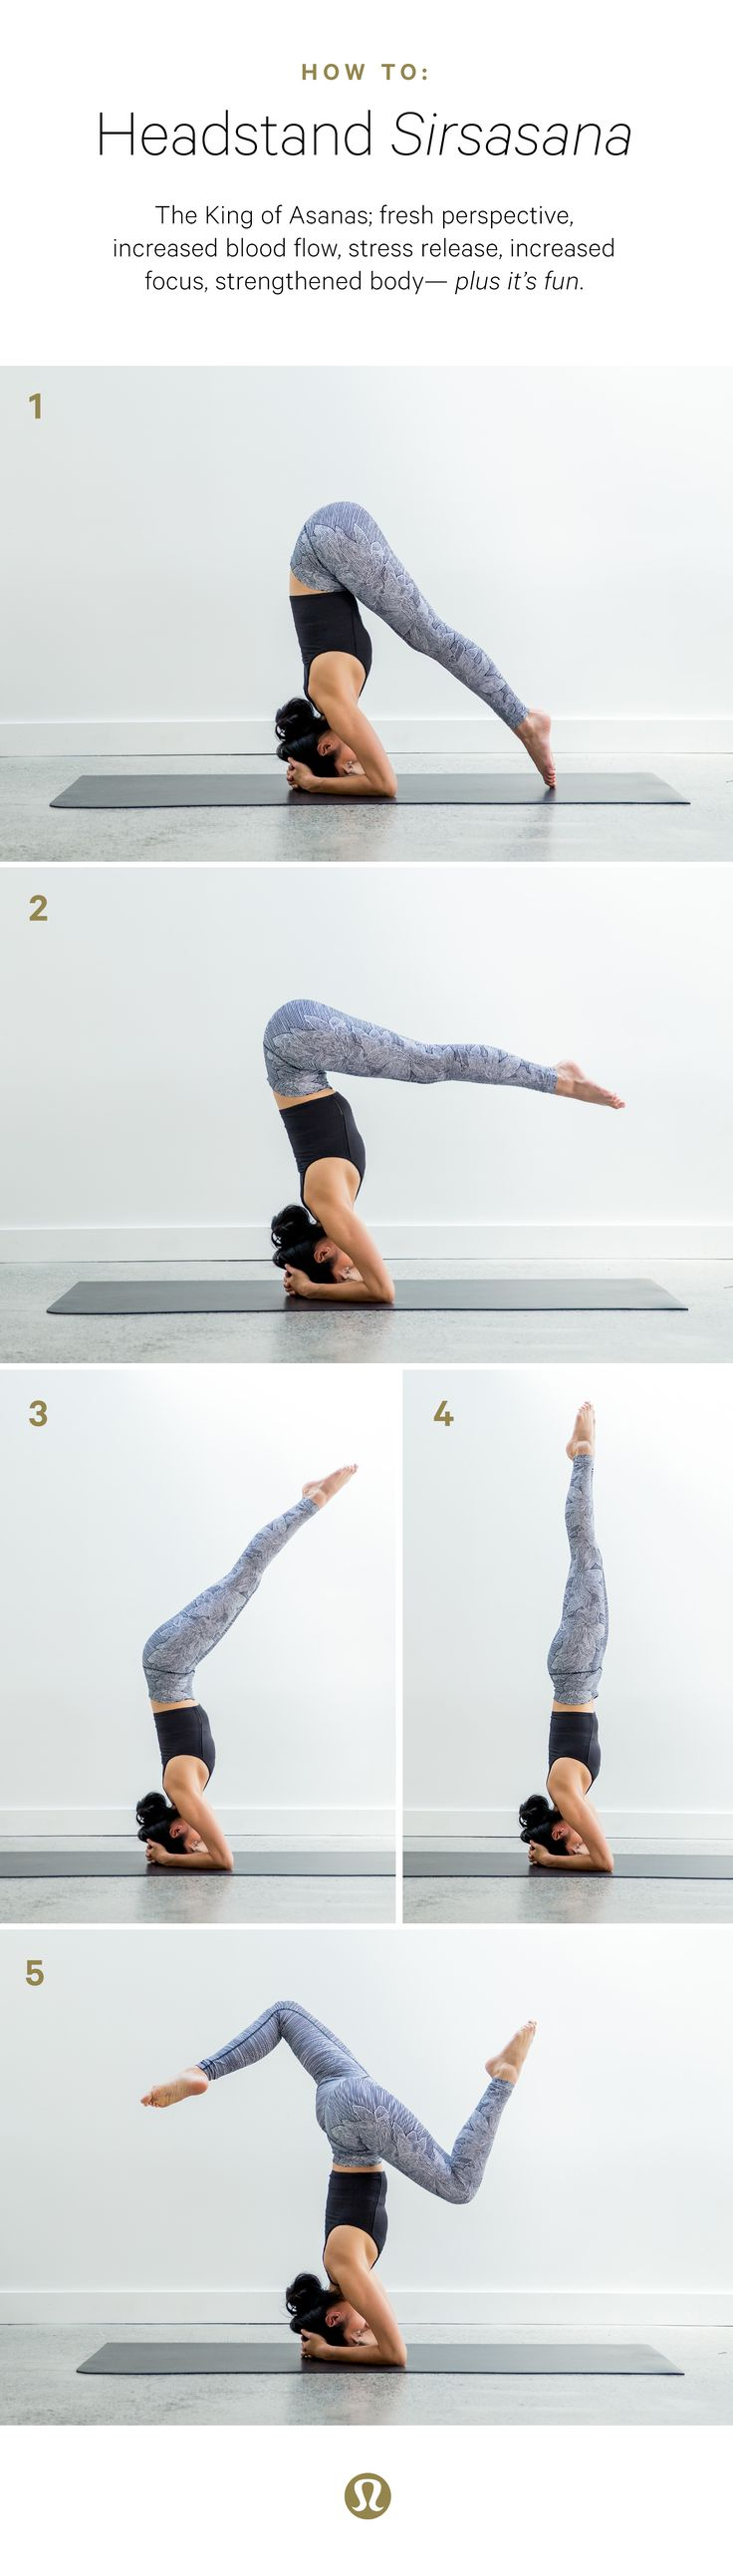 How to headstand (sirsasana). Step one: head to a local yoga class to get in…